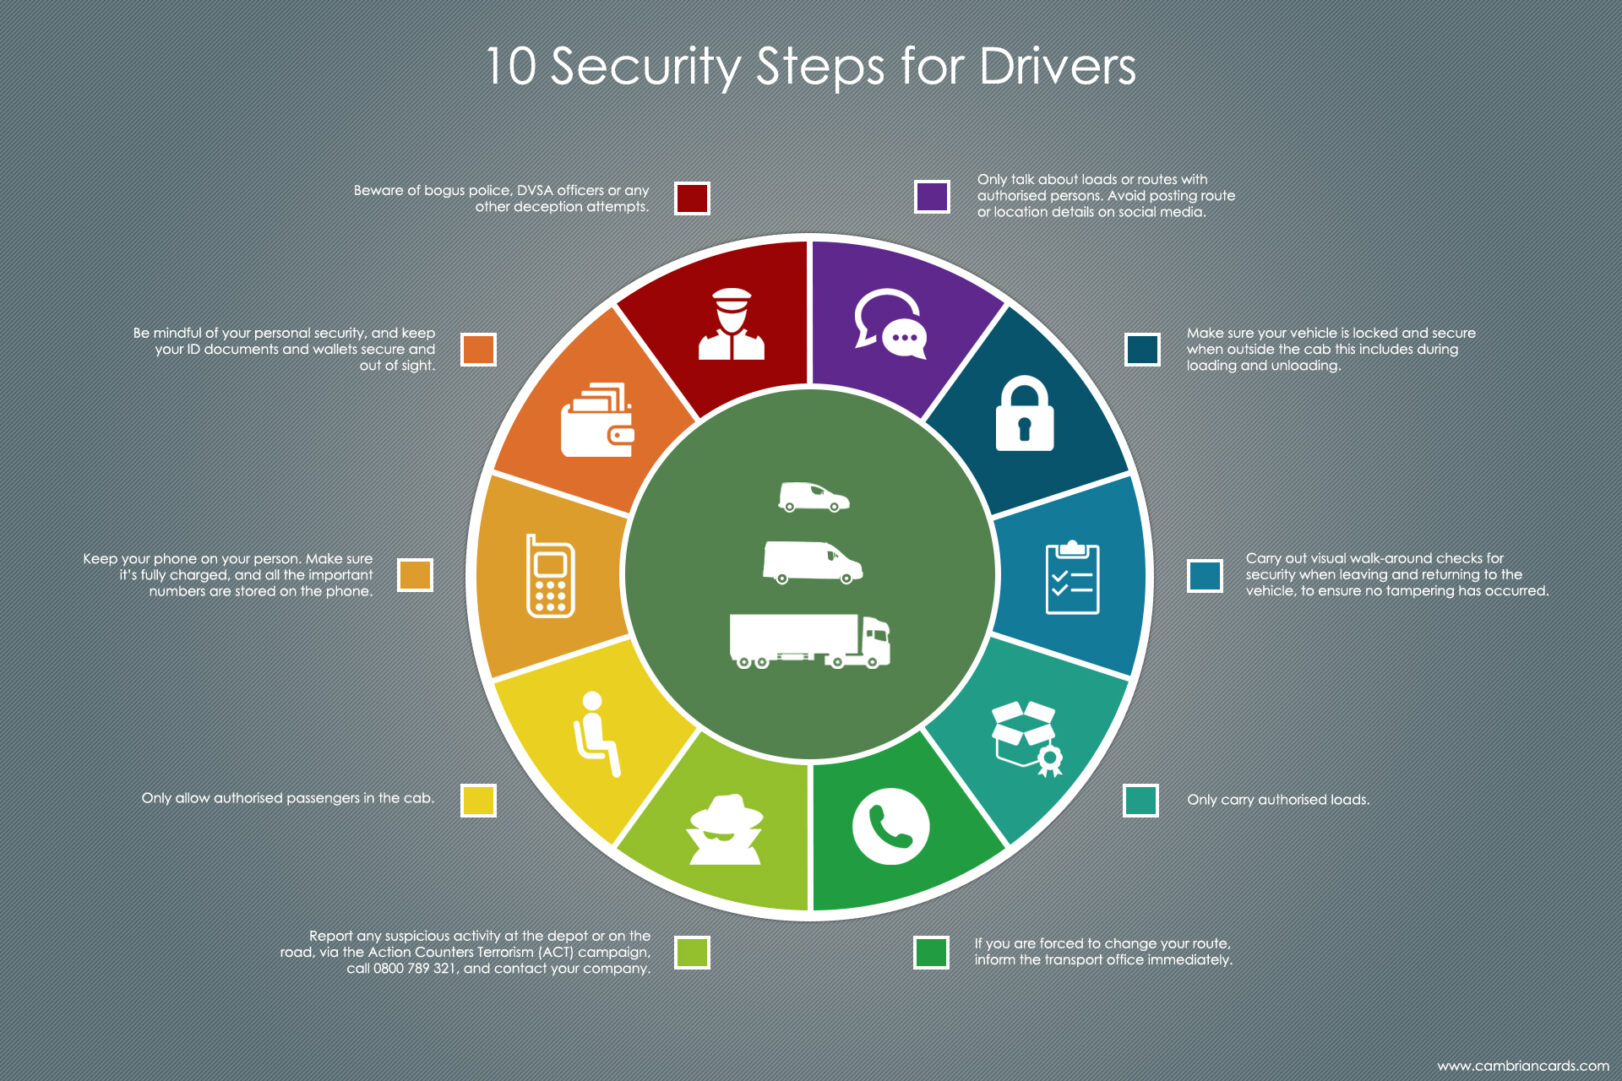 10 Security Steps for Drivers